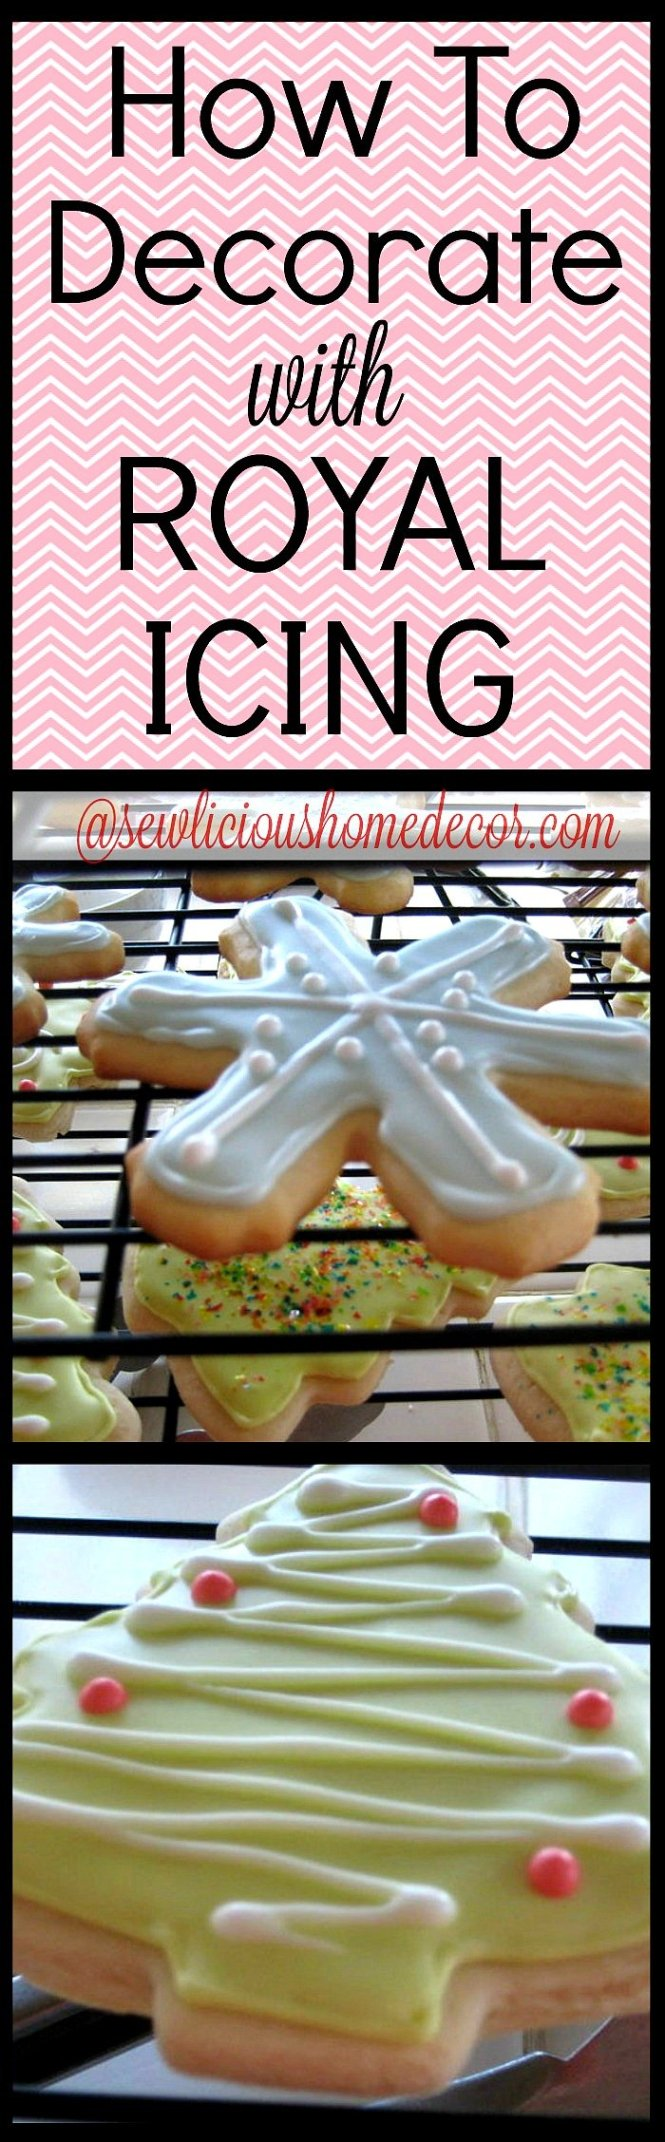 How To Decorate with Royal Icing Tutorial sewlicioushomedecor.com